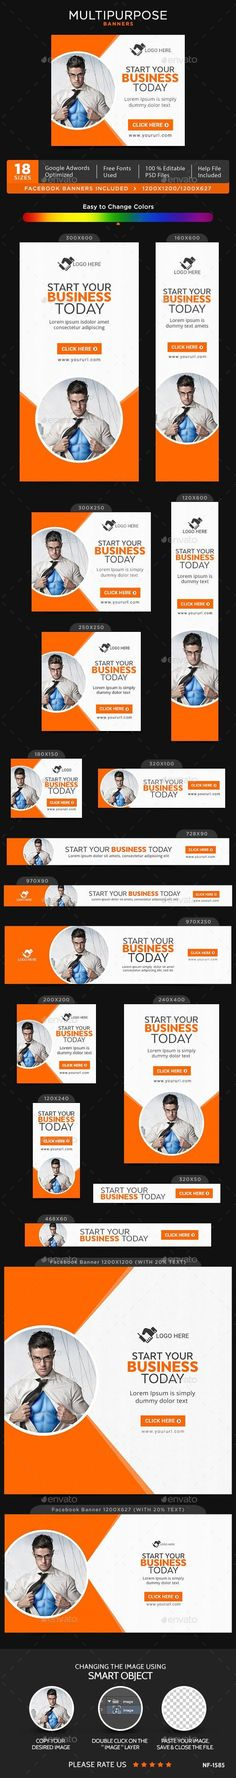 Buy Multipurpose Banners by Hyov on GraphicRiver. Promote your Products and services with this great looking Banner Set. Banner Template, Diy Banner, Facebook Ad Size, Banner Drawing, Rollup Banner, Summer Banner, One Page Website, Interactive Design, Banner Design